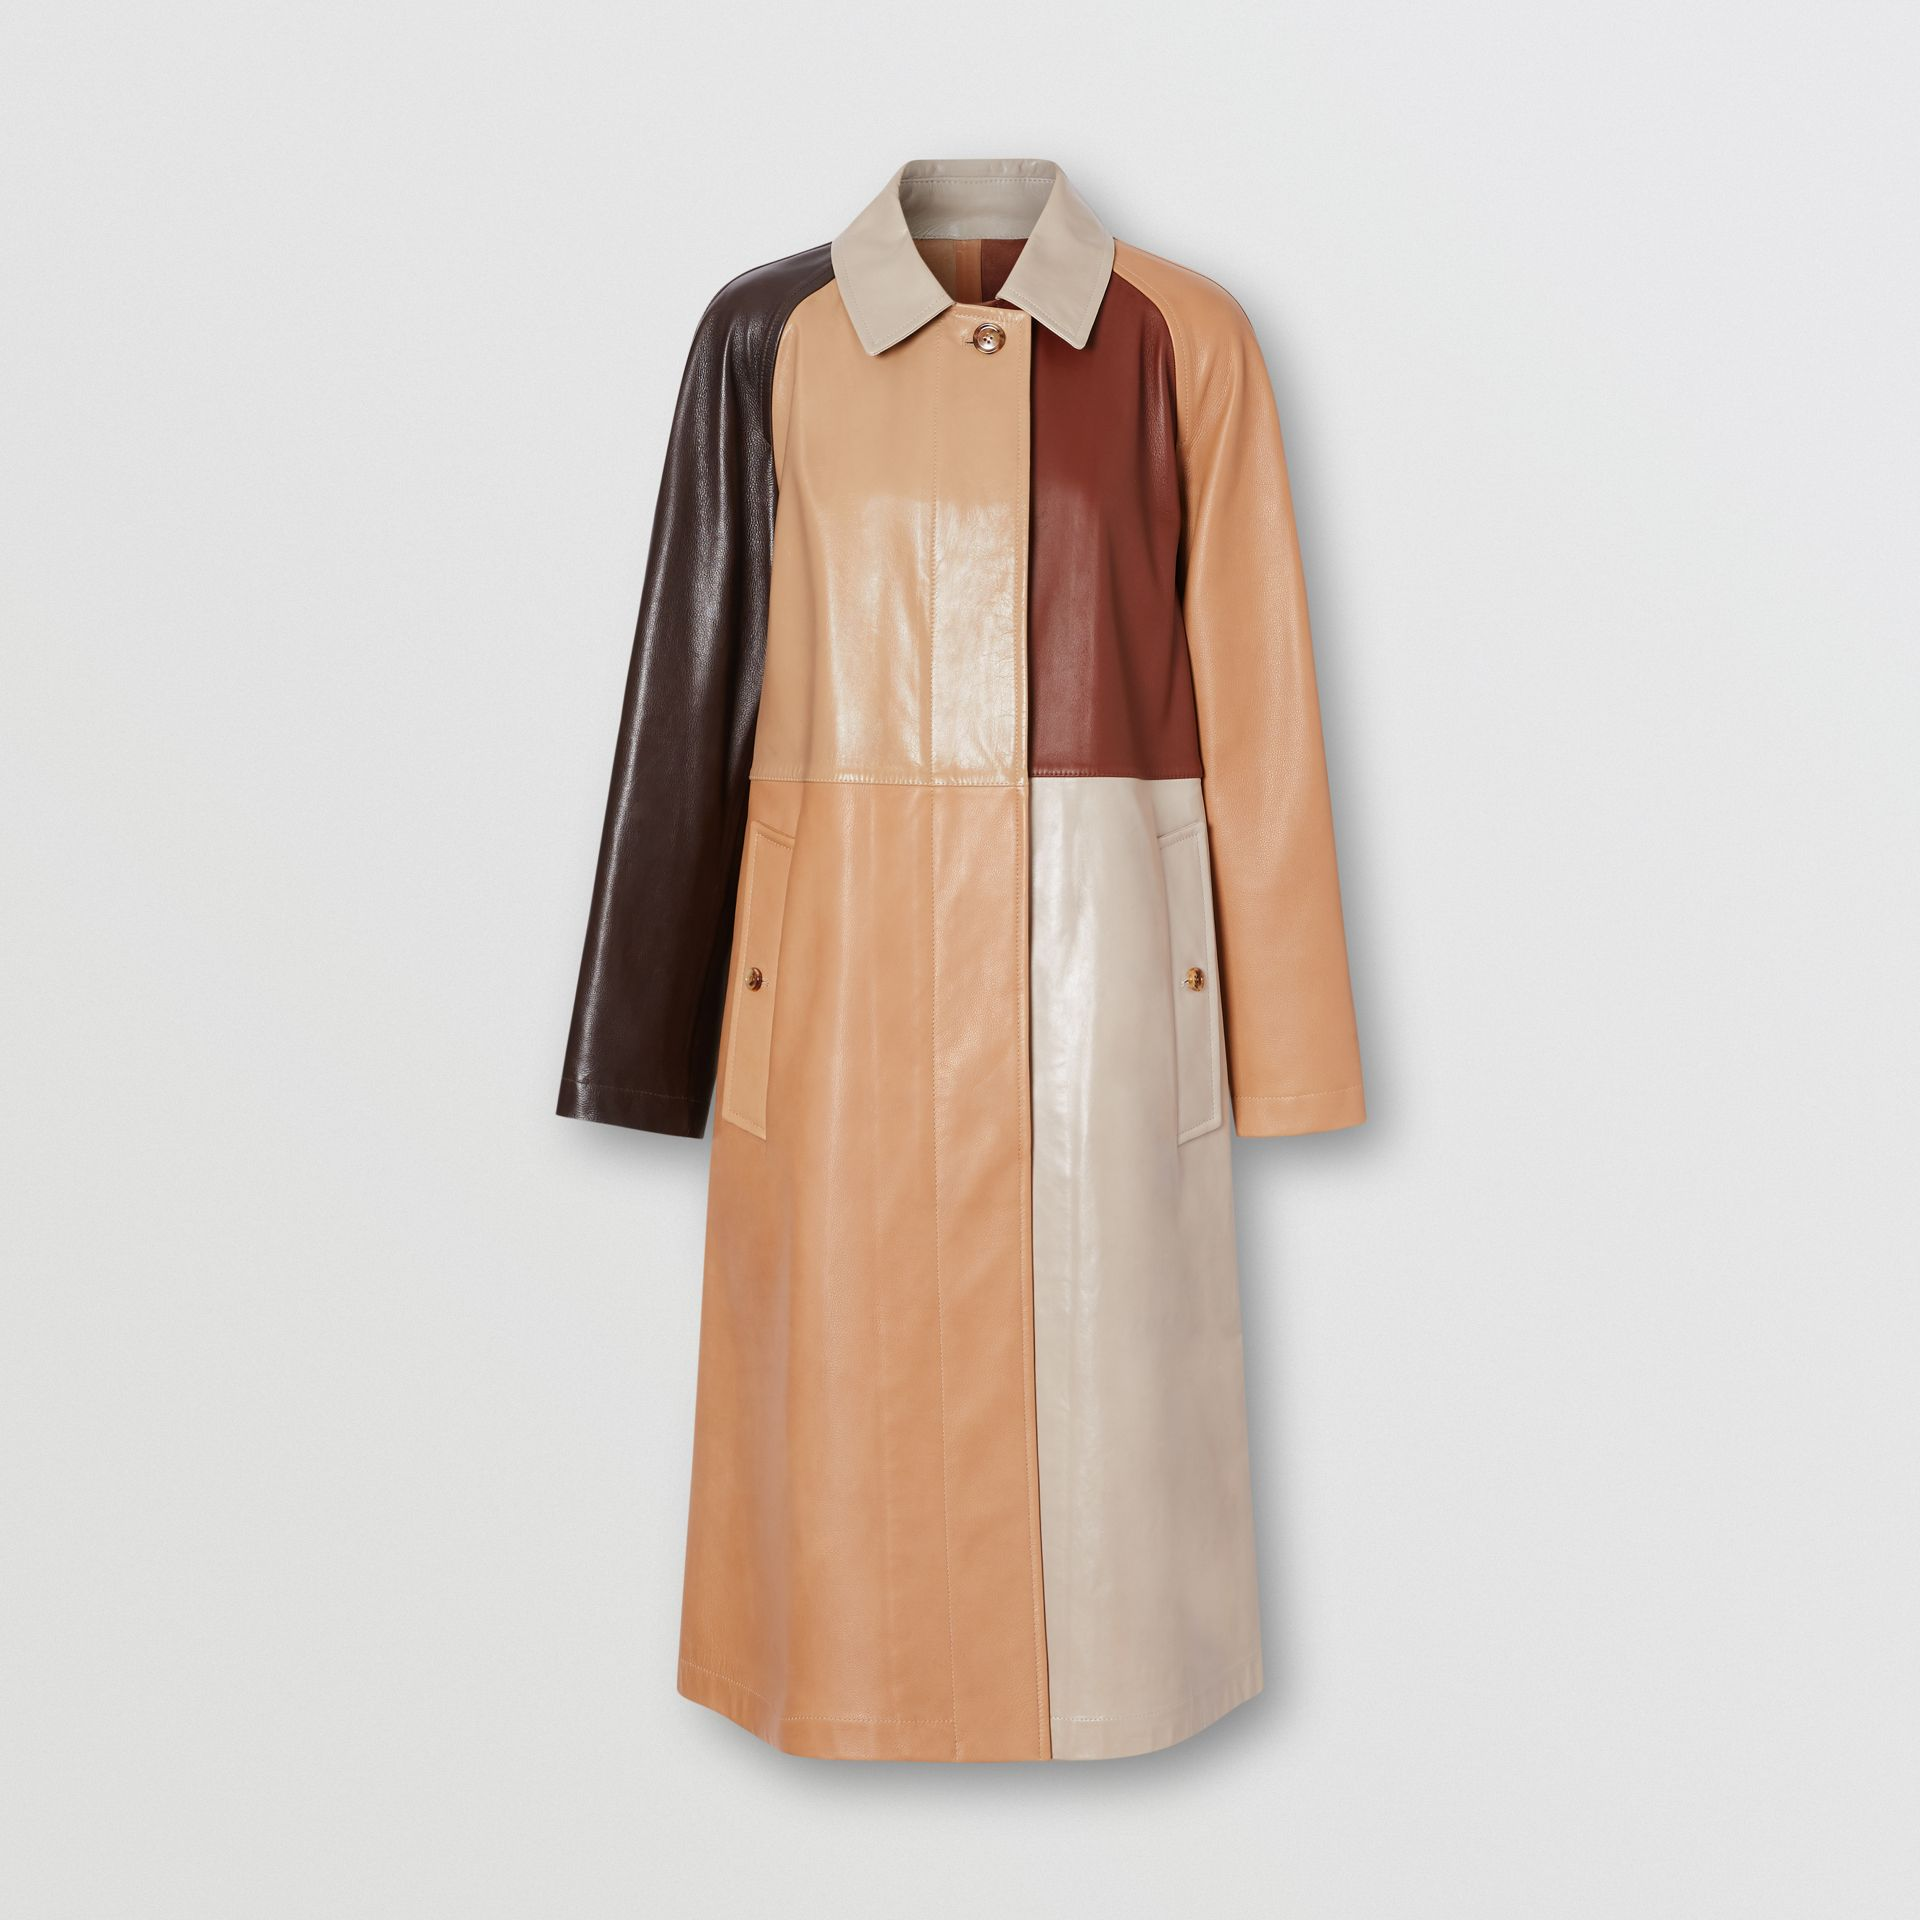 Patchwork Lambskin and Leather Car Coat in Biscuit - Women | Burberry - gallery image 3